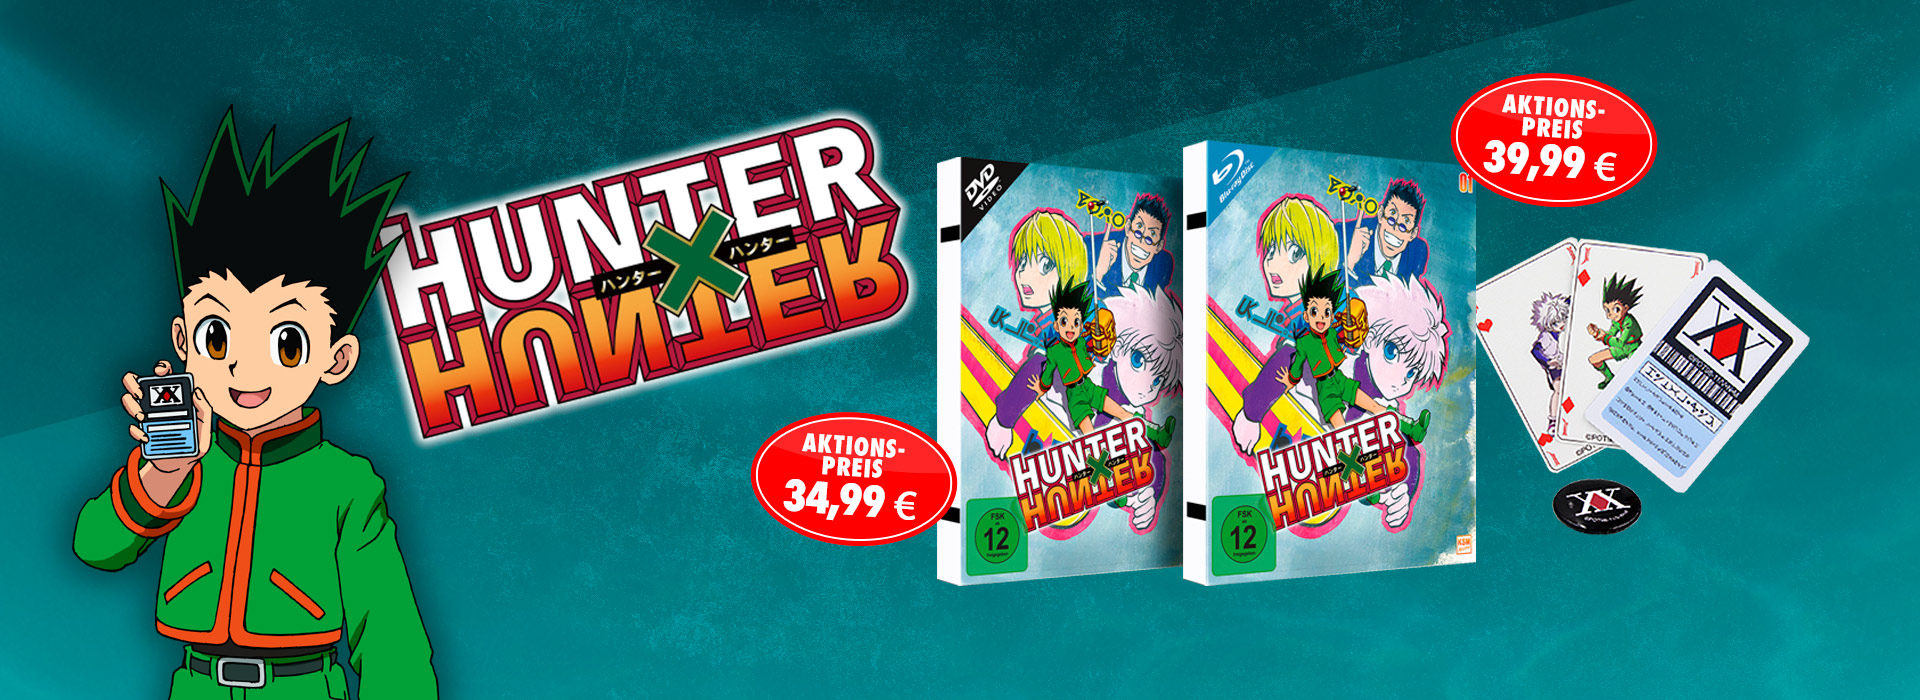 Aktion HunterXHunter